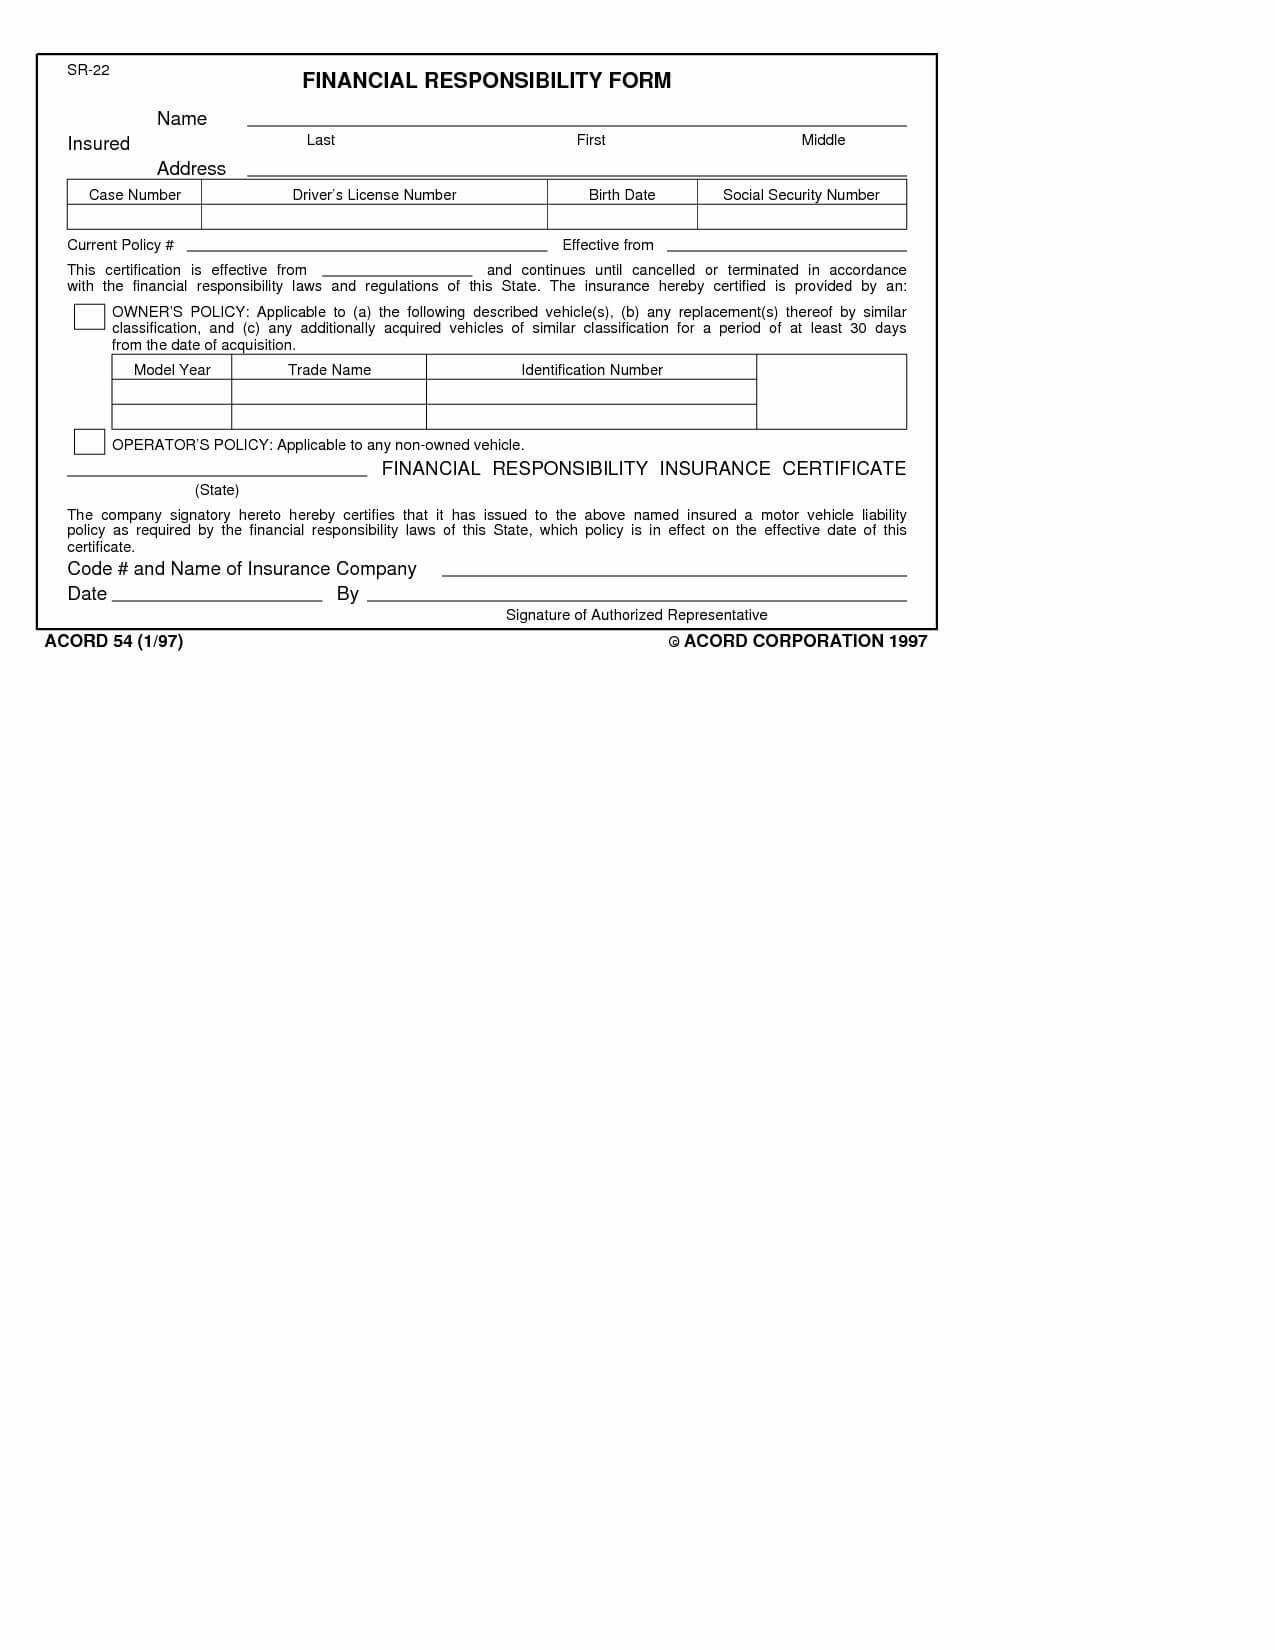 Free Fake Medical Certificate Template Best Car Insurance Pertaining To Free Fake Medical Certificate Template